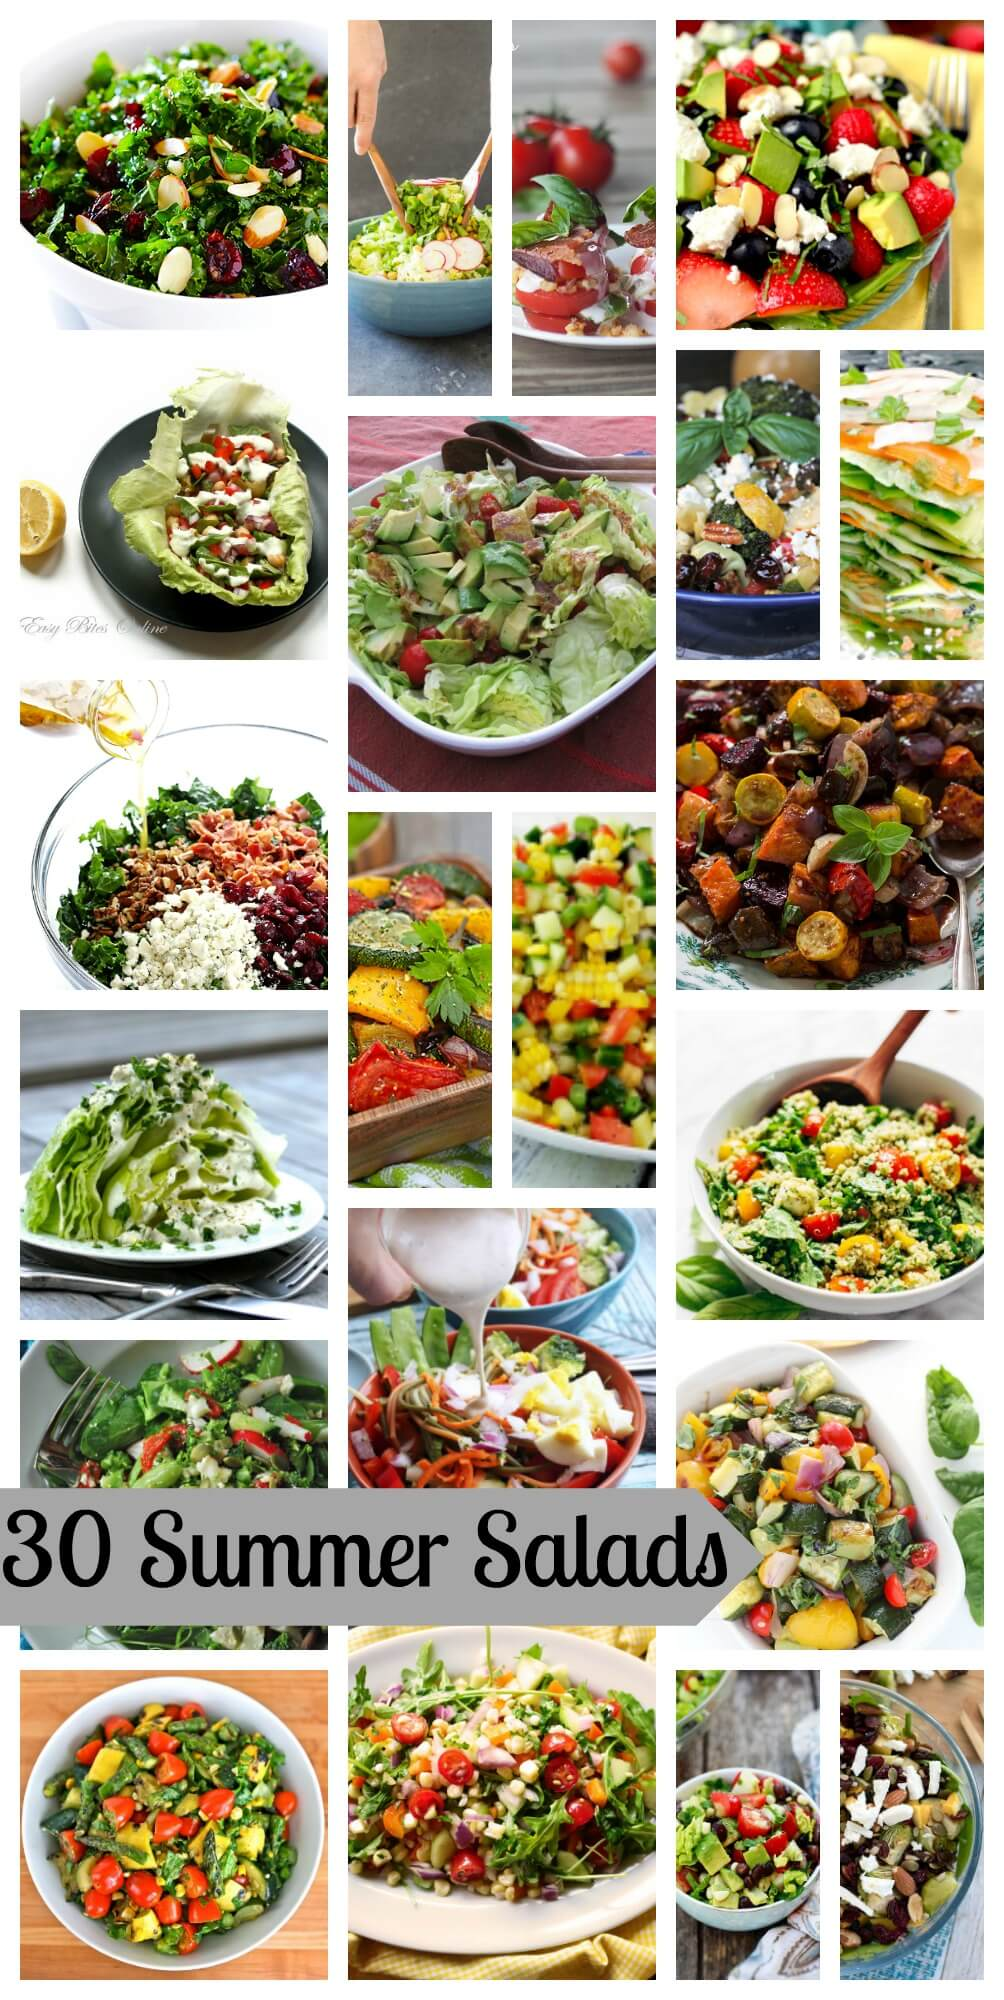 30 summer salads from Life Sew Savory